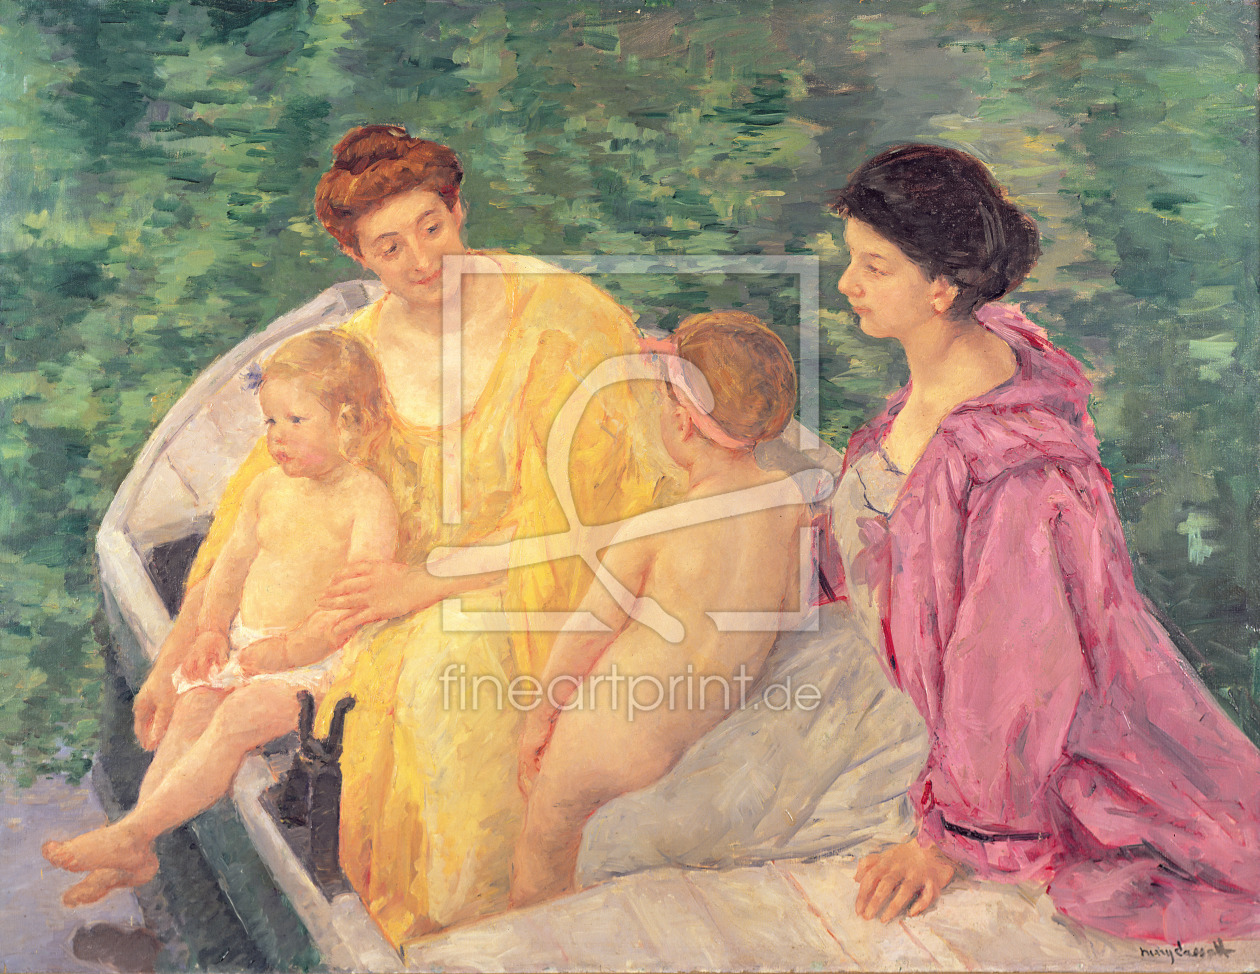 Bild-Nr.: 31000181 The Swim, or Two Mothers and Their Children on a Boat, 1910 erstellt von Cassatt, Mary